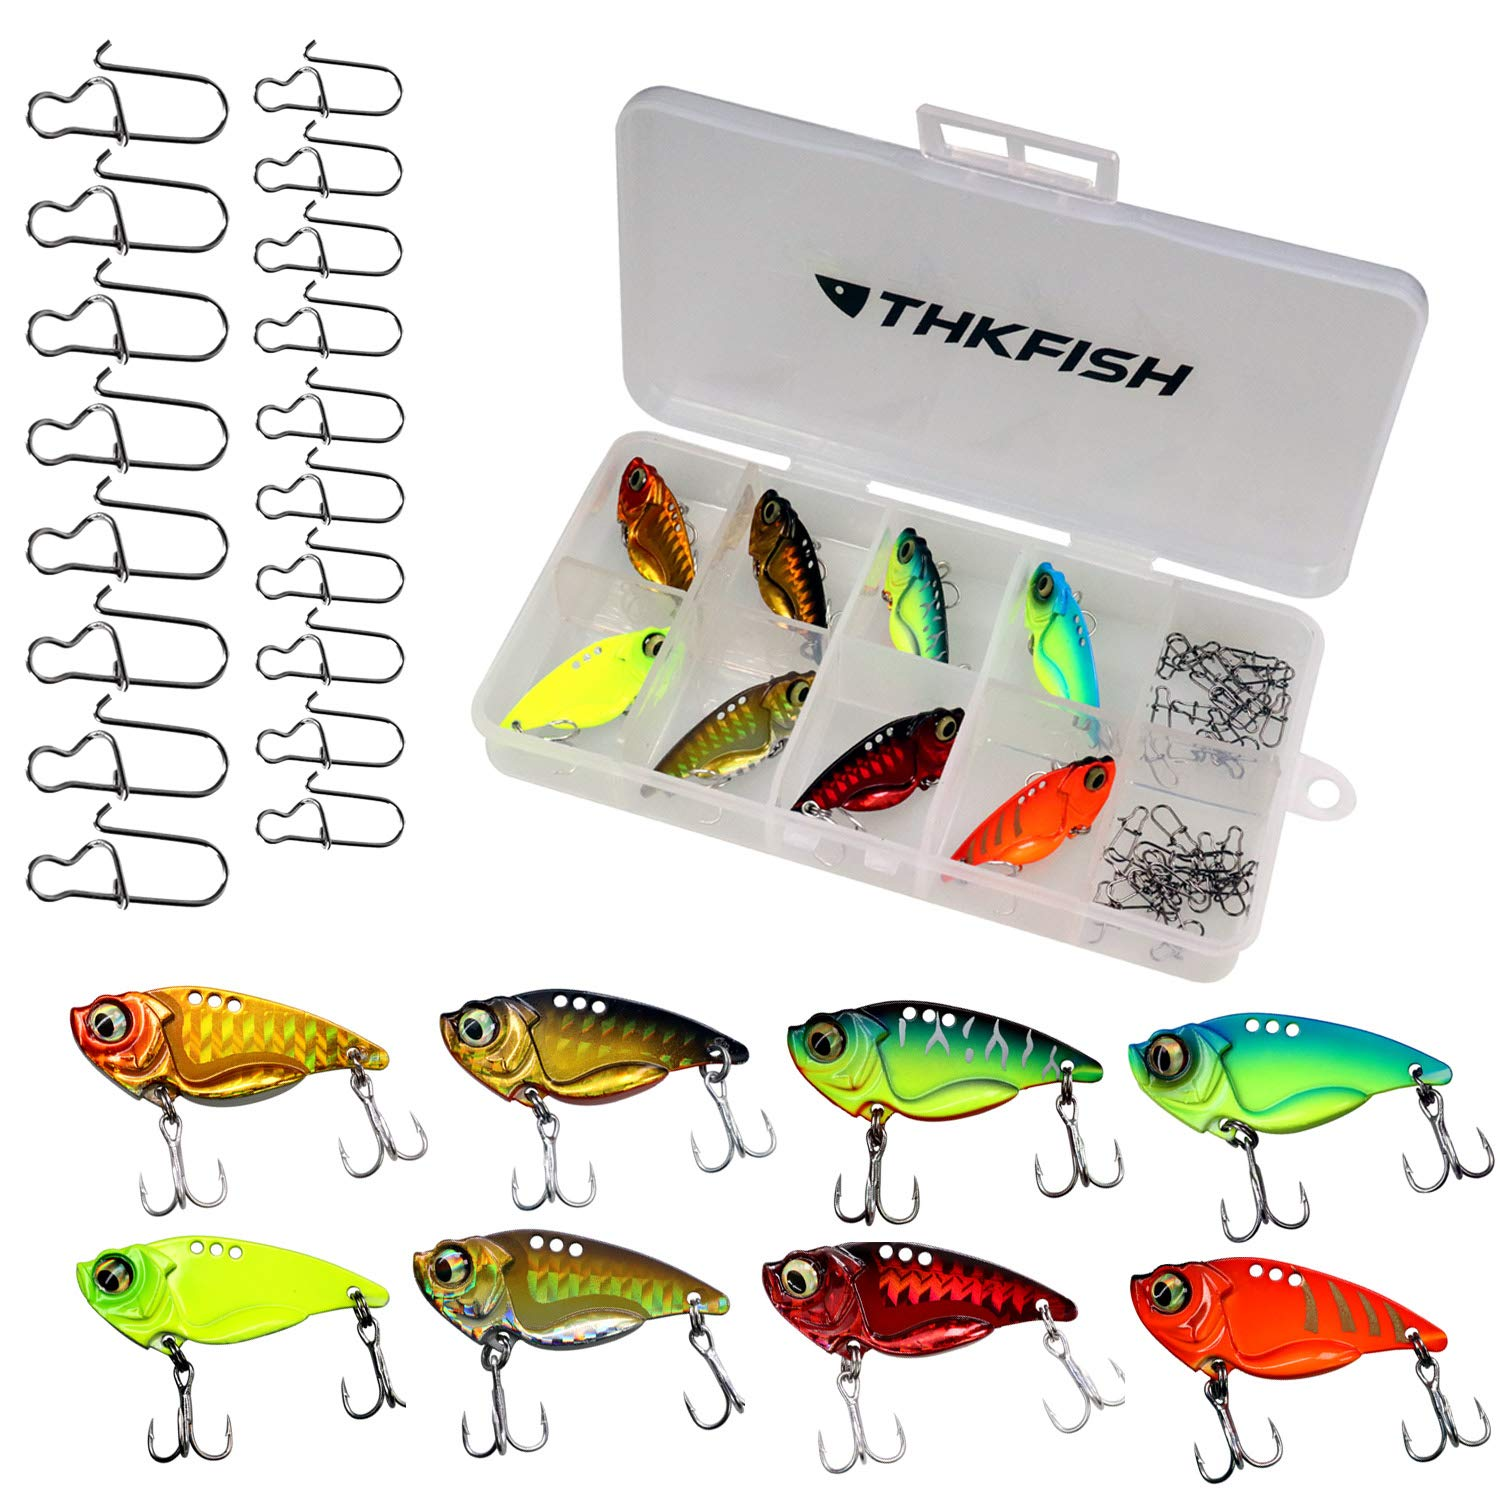 thkfish Metal VIB Hard Fishing Lure Saltwater Freshwater Crankbait Wobble Fishing Spinner Spoons Lure Blade Bait for Bass Trout Crappie Fishing